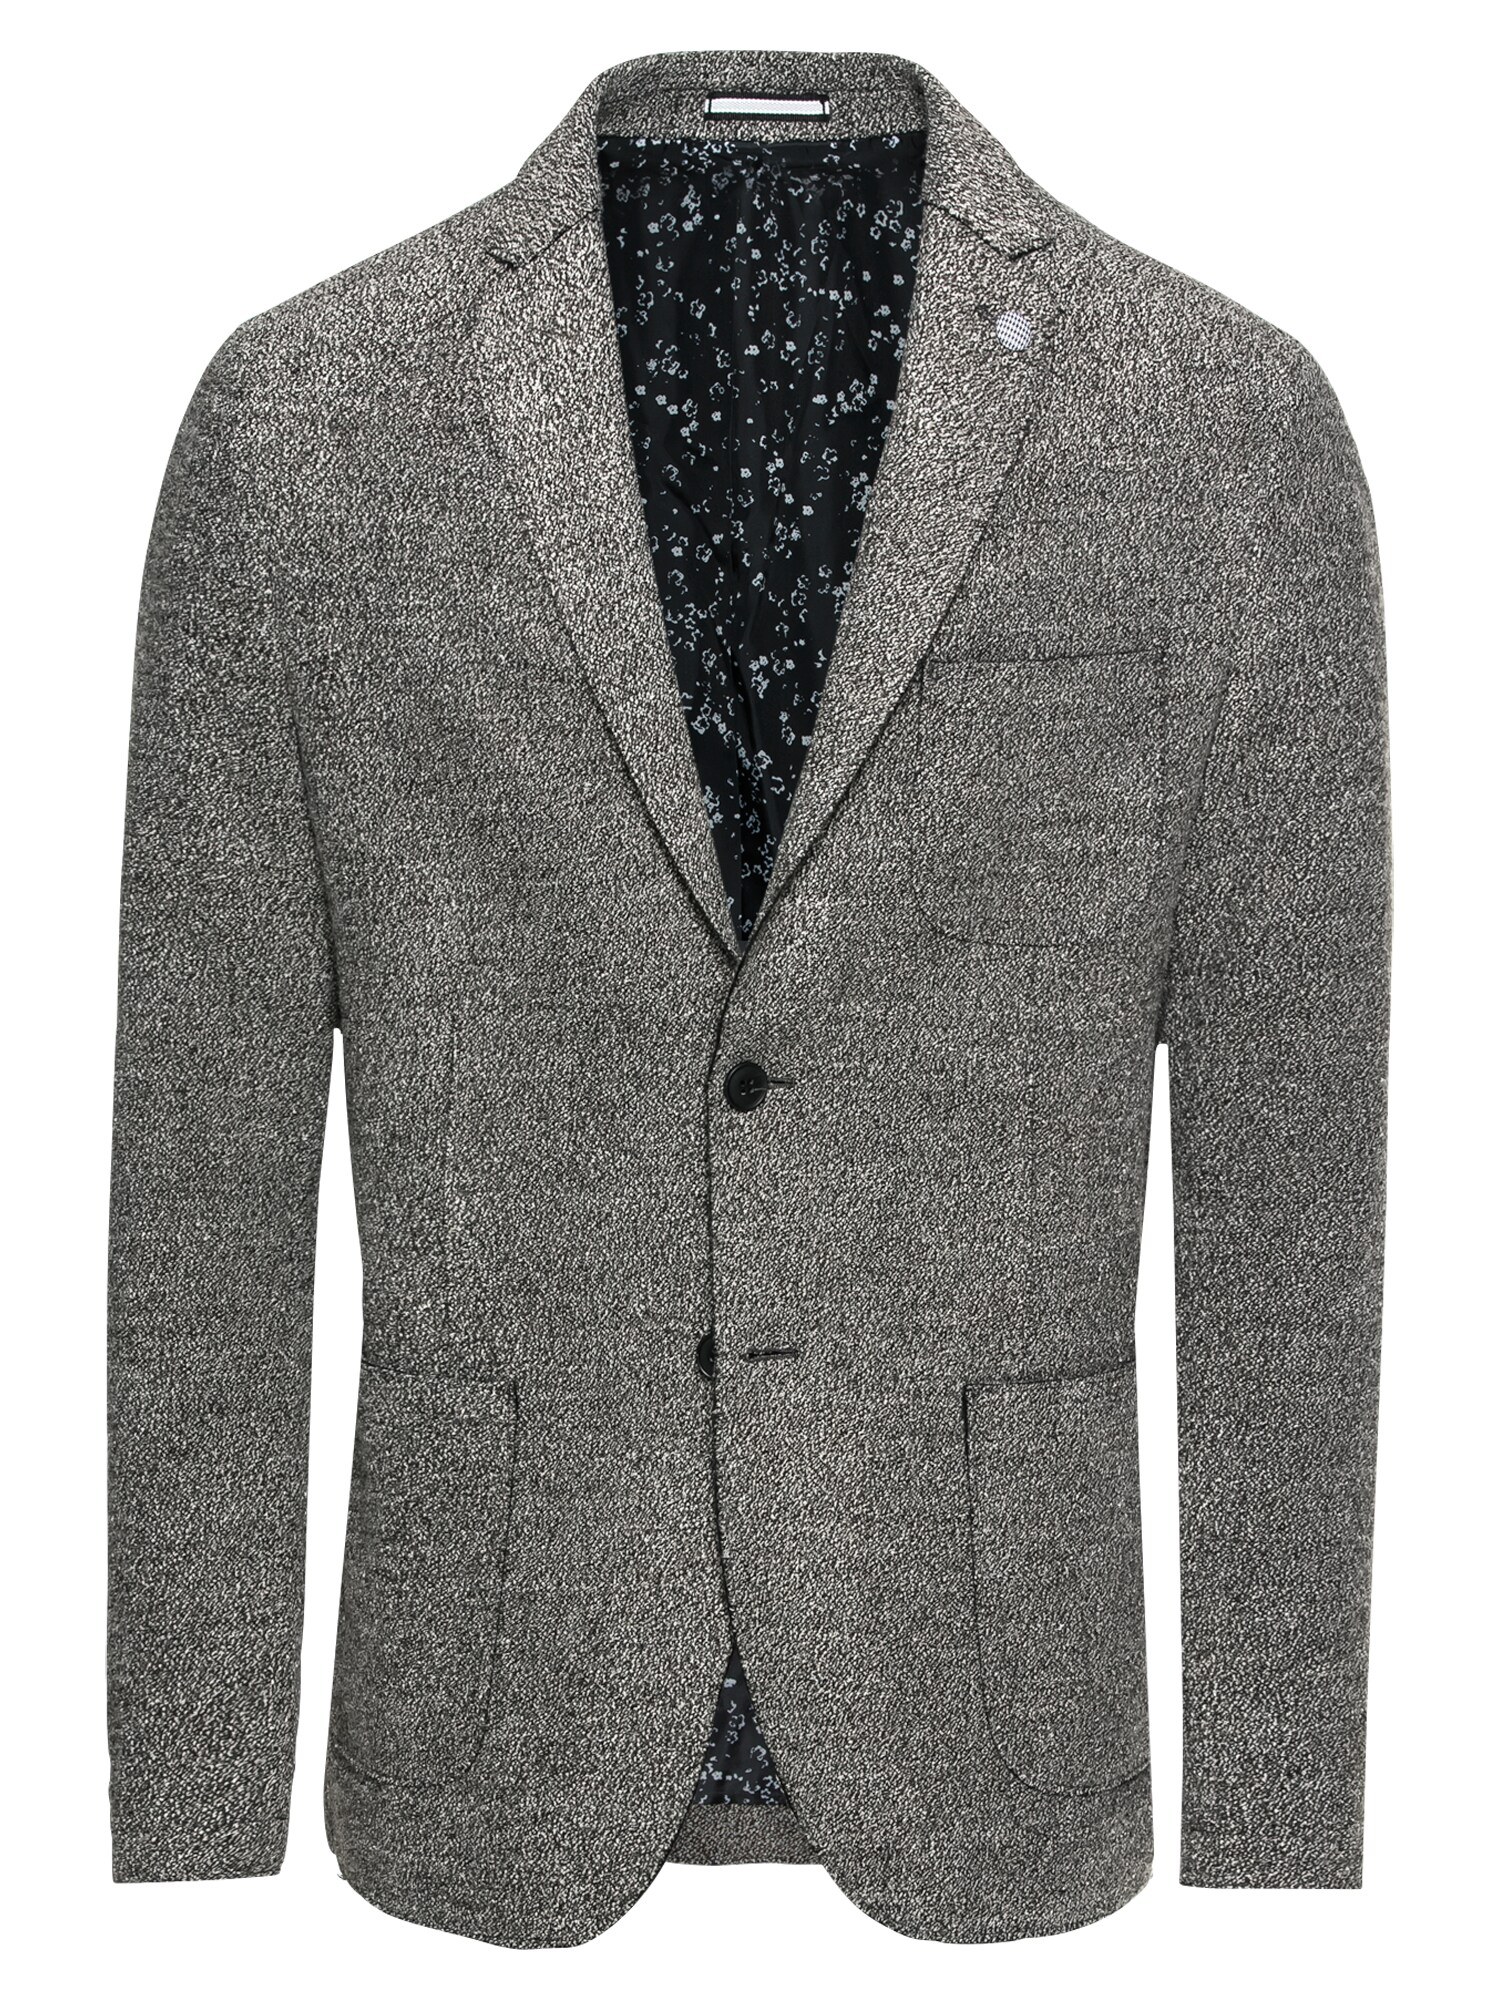 SELECTED HOMME Sako SLHONE-CALE BLAZER B šedý melír Selected Homme